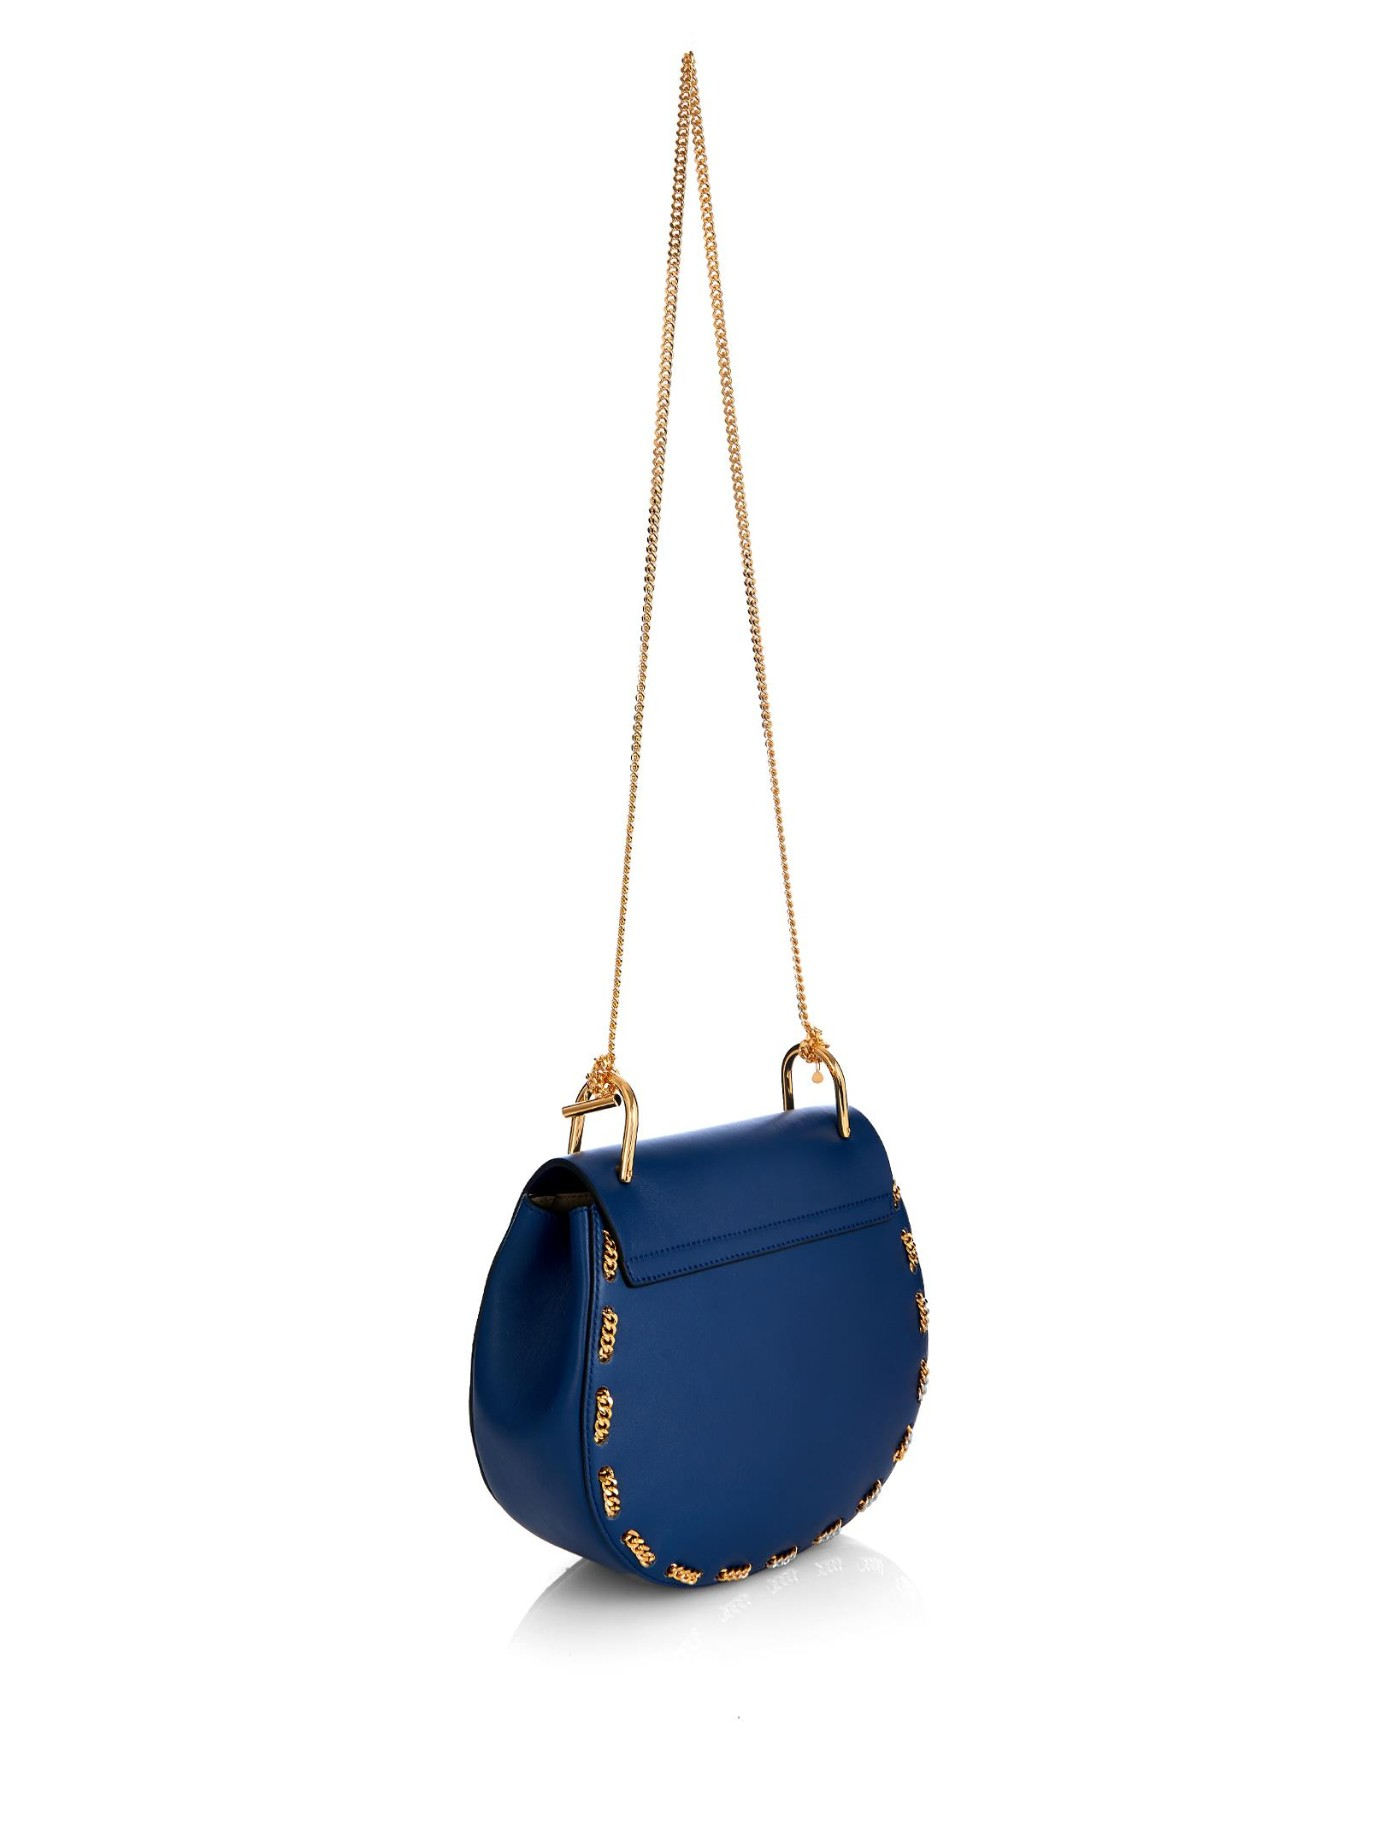 Chlo�� Drew Small Threaded-Chain Shoulder Bag in Blue | Lyst